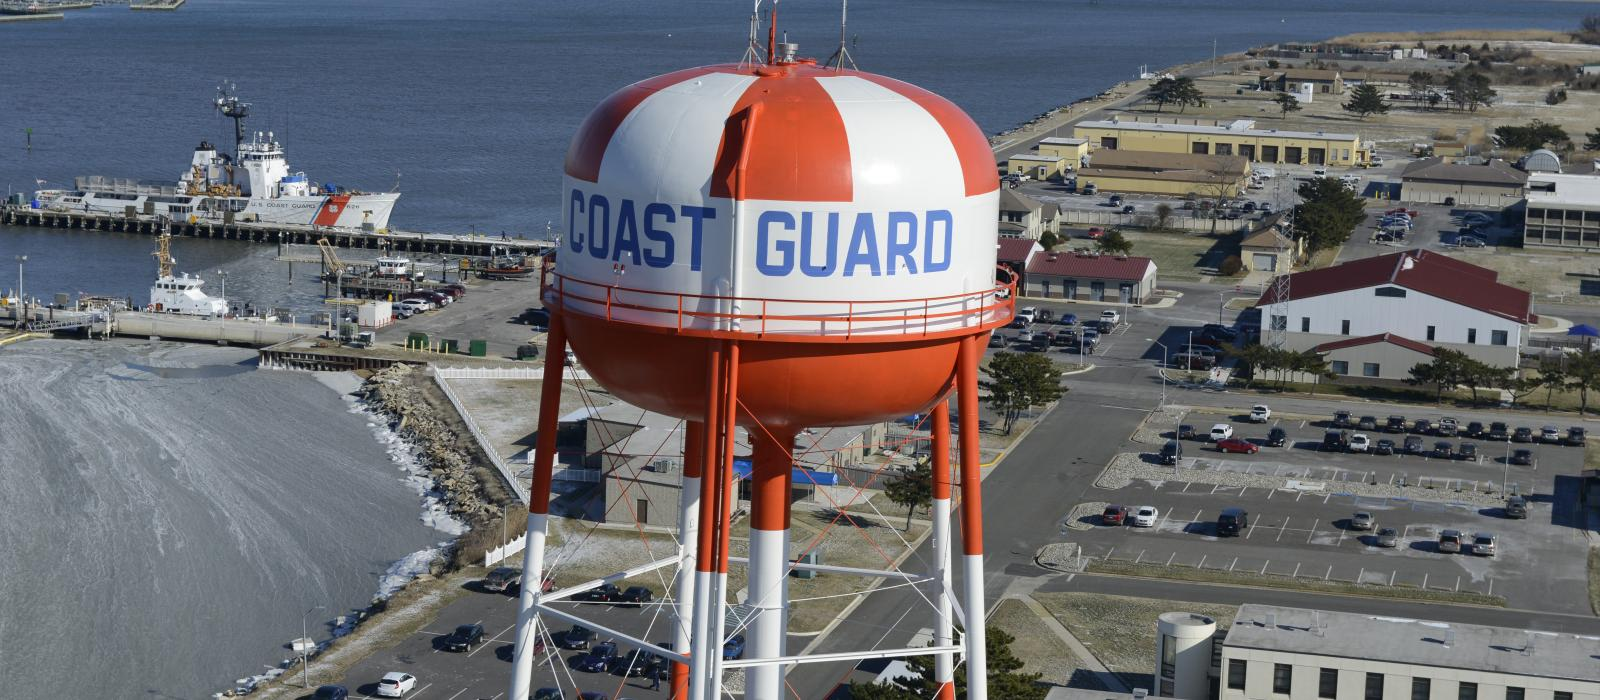 10 nj facts about the coast guard cape may lewes ferry